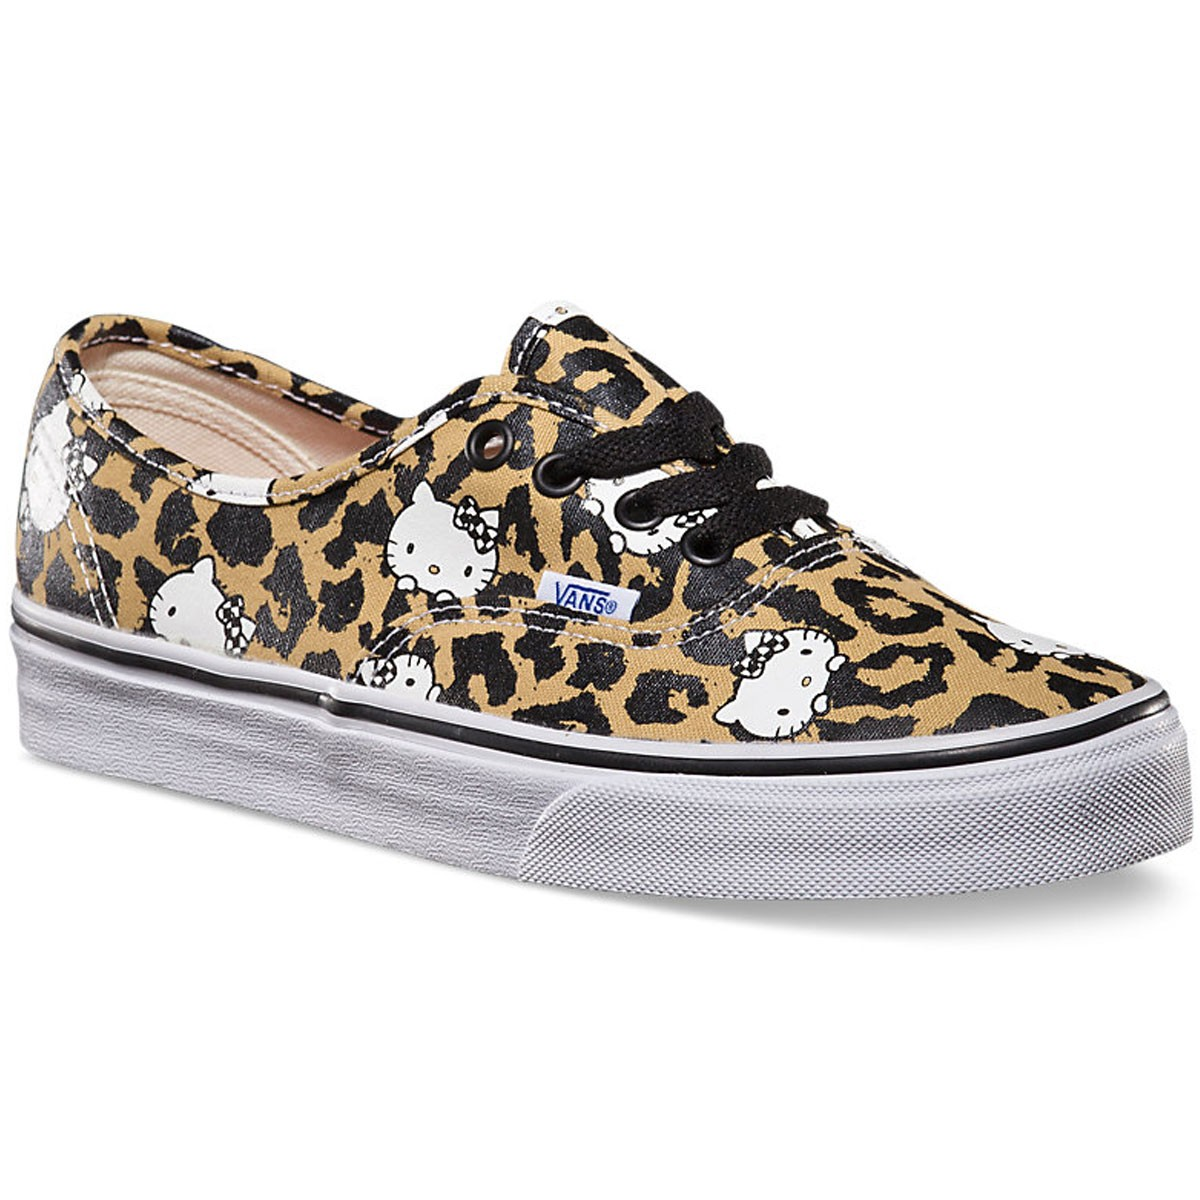 Vans Hello Kitty Authentic Shoes - Leopard/True White - 7.5